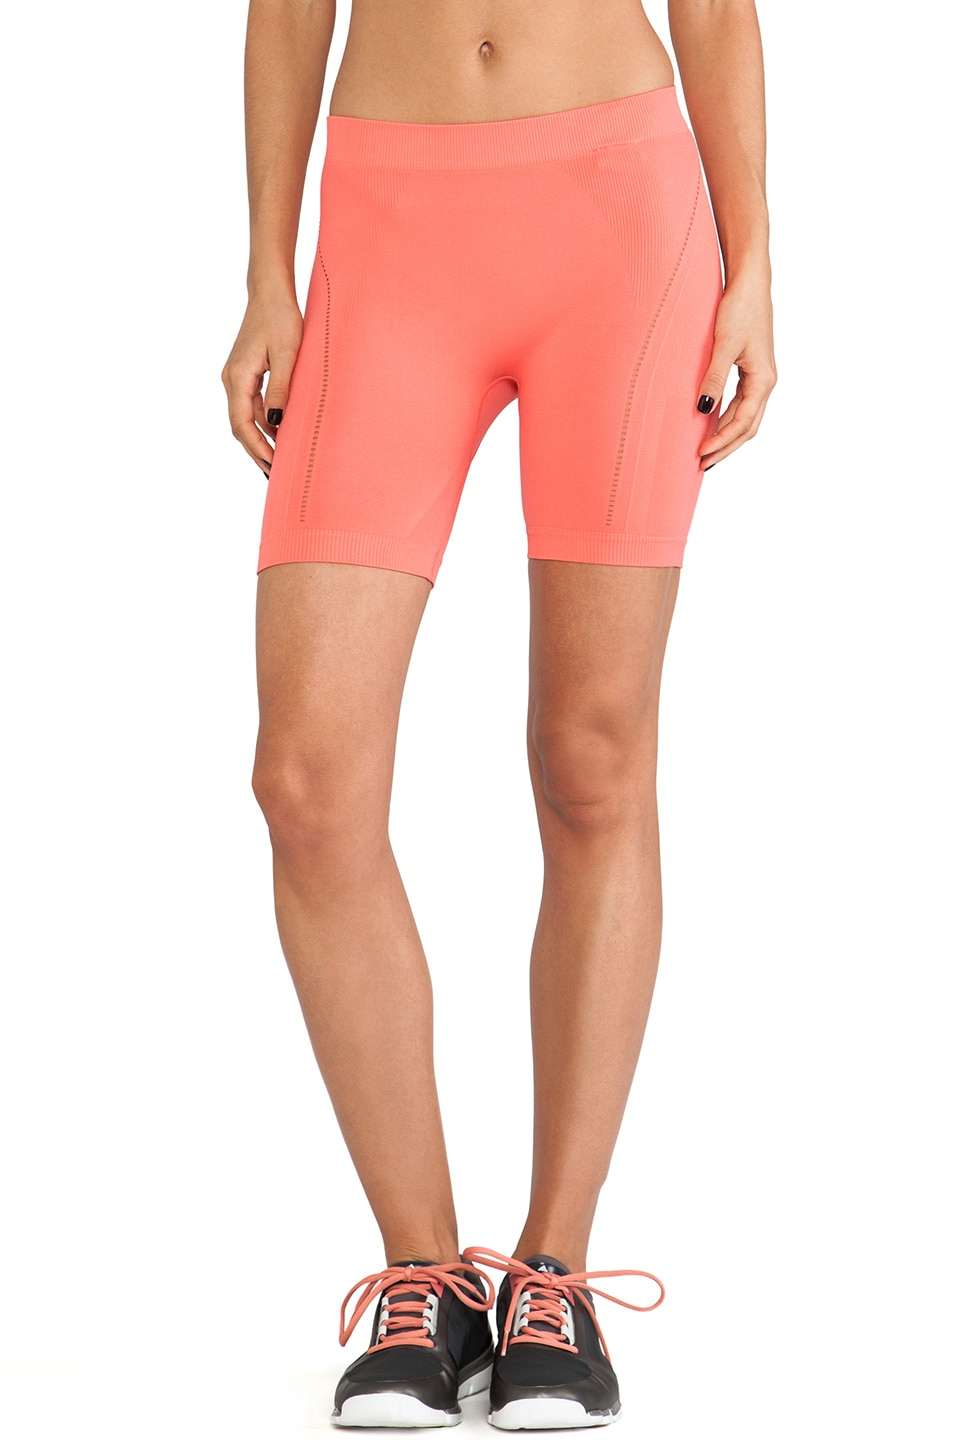 adidas by Stella McCartney YO Seamless Short in Bright Coral